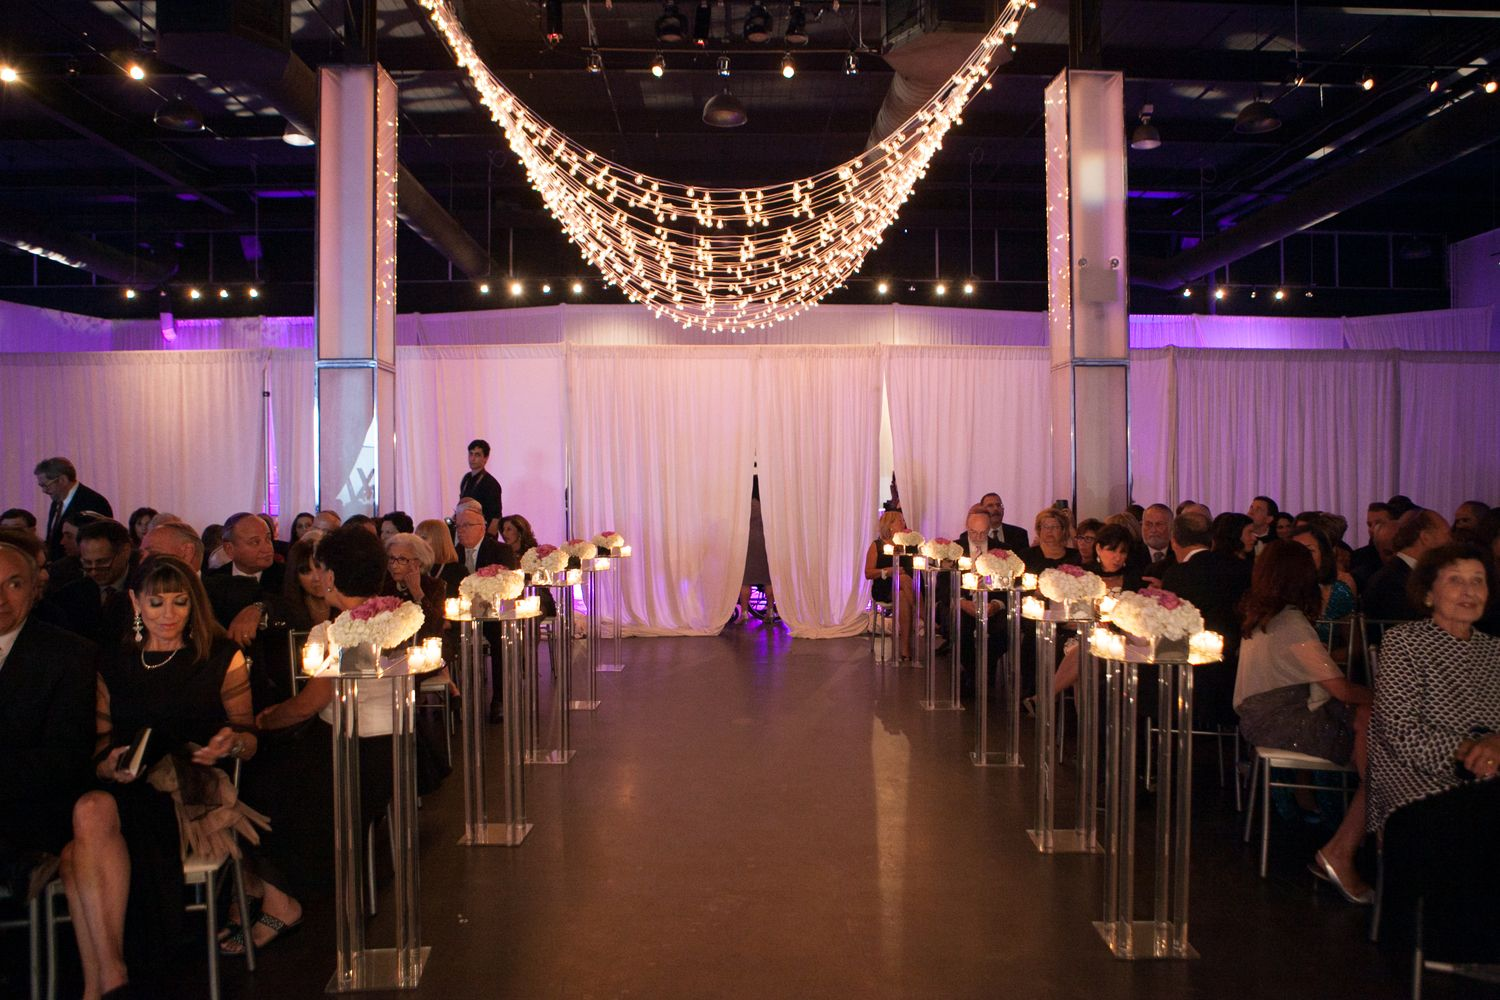 Wedding ceremony at the Warehouse Event Venue | RECEPTION ...